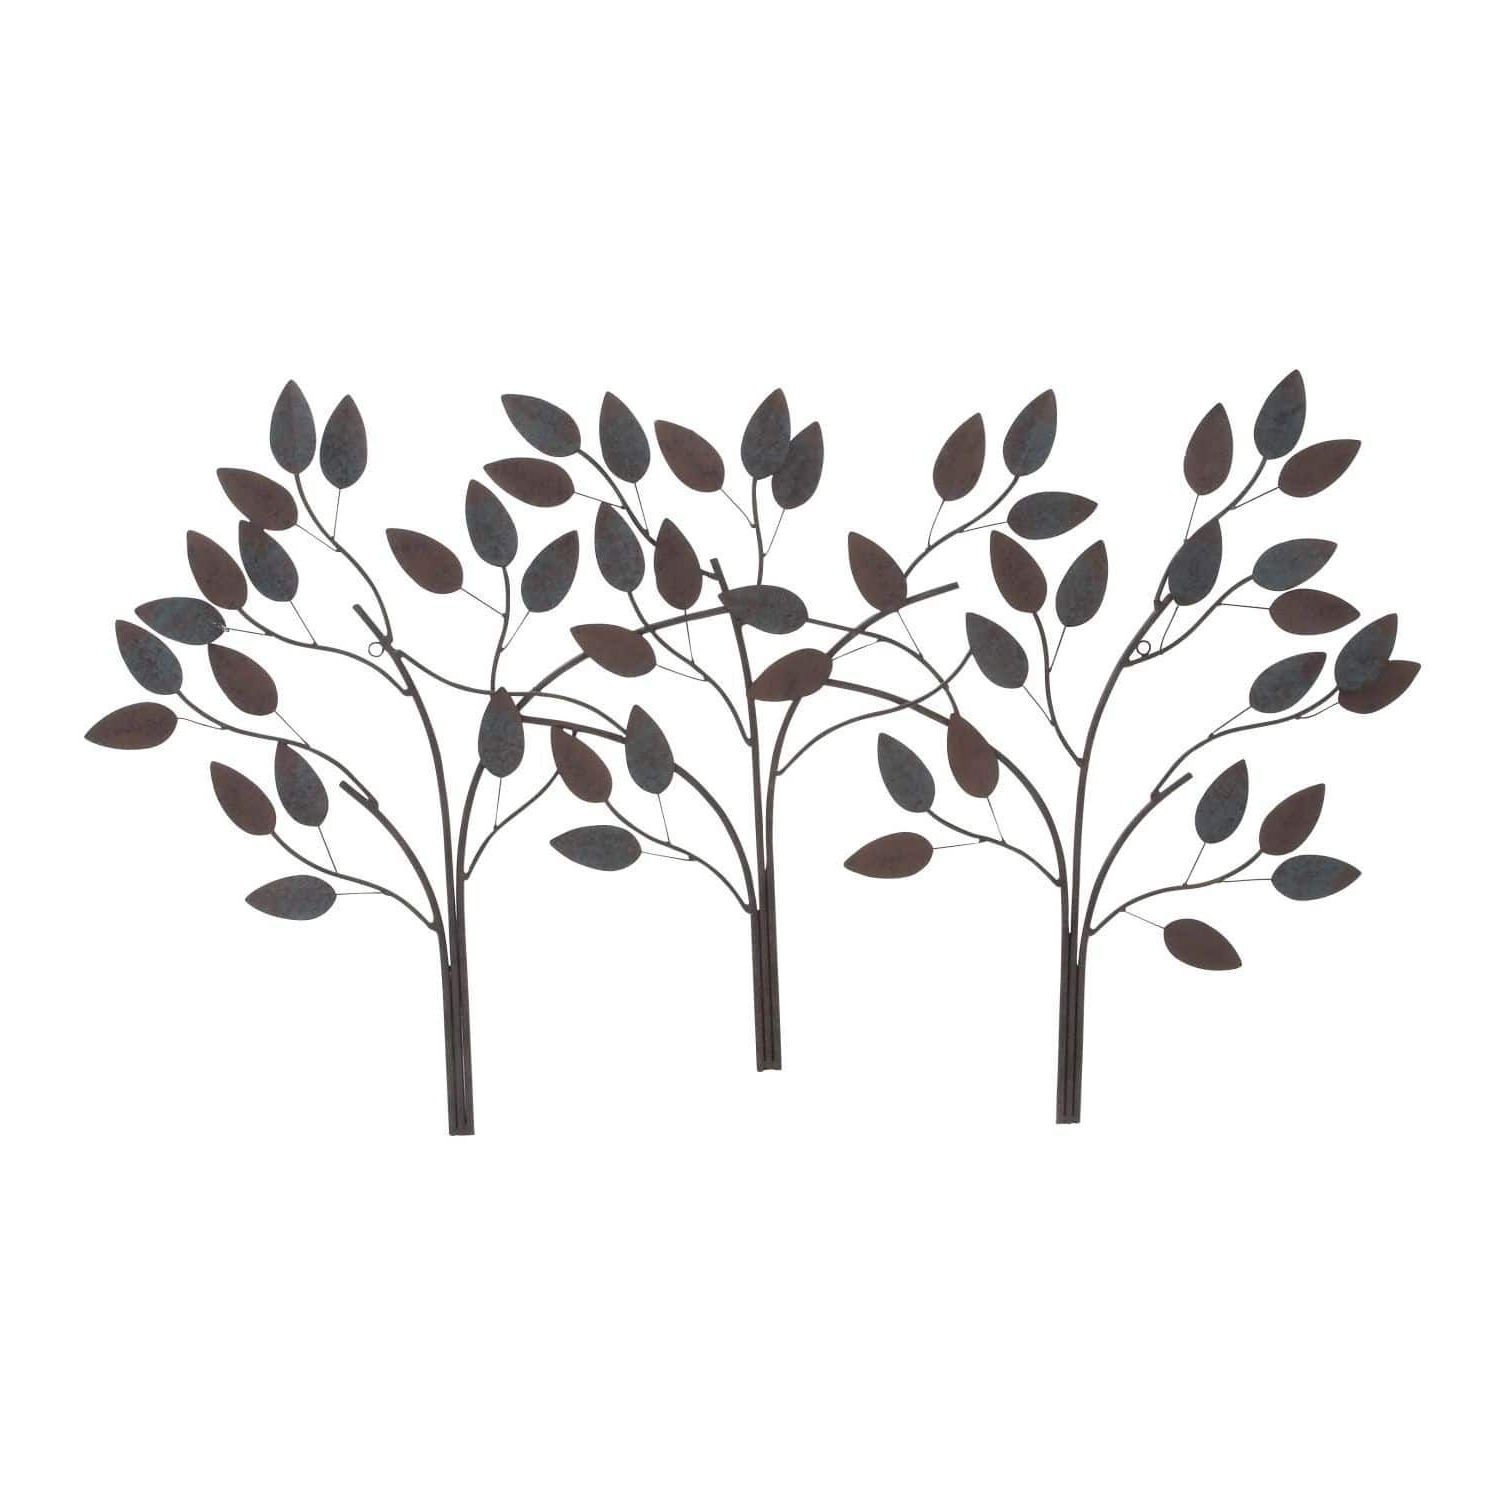 Most Recent Studio 350 Metal Leaf Wall Decor 48 Inches Wide, 27 Inches High With Regard To Desford Leaf Wall Decor By Charlton Home (Gallery 8 of 20)